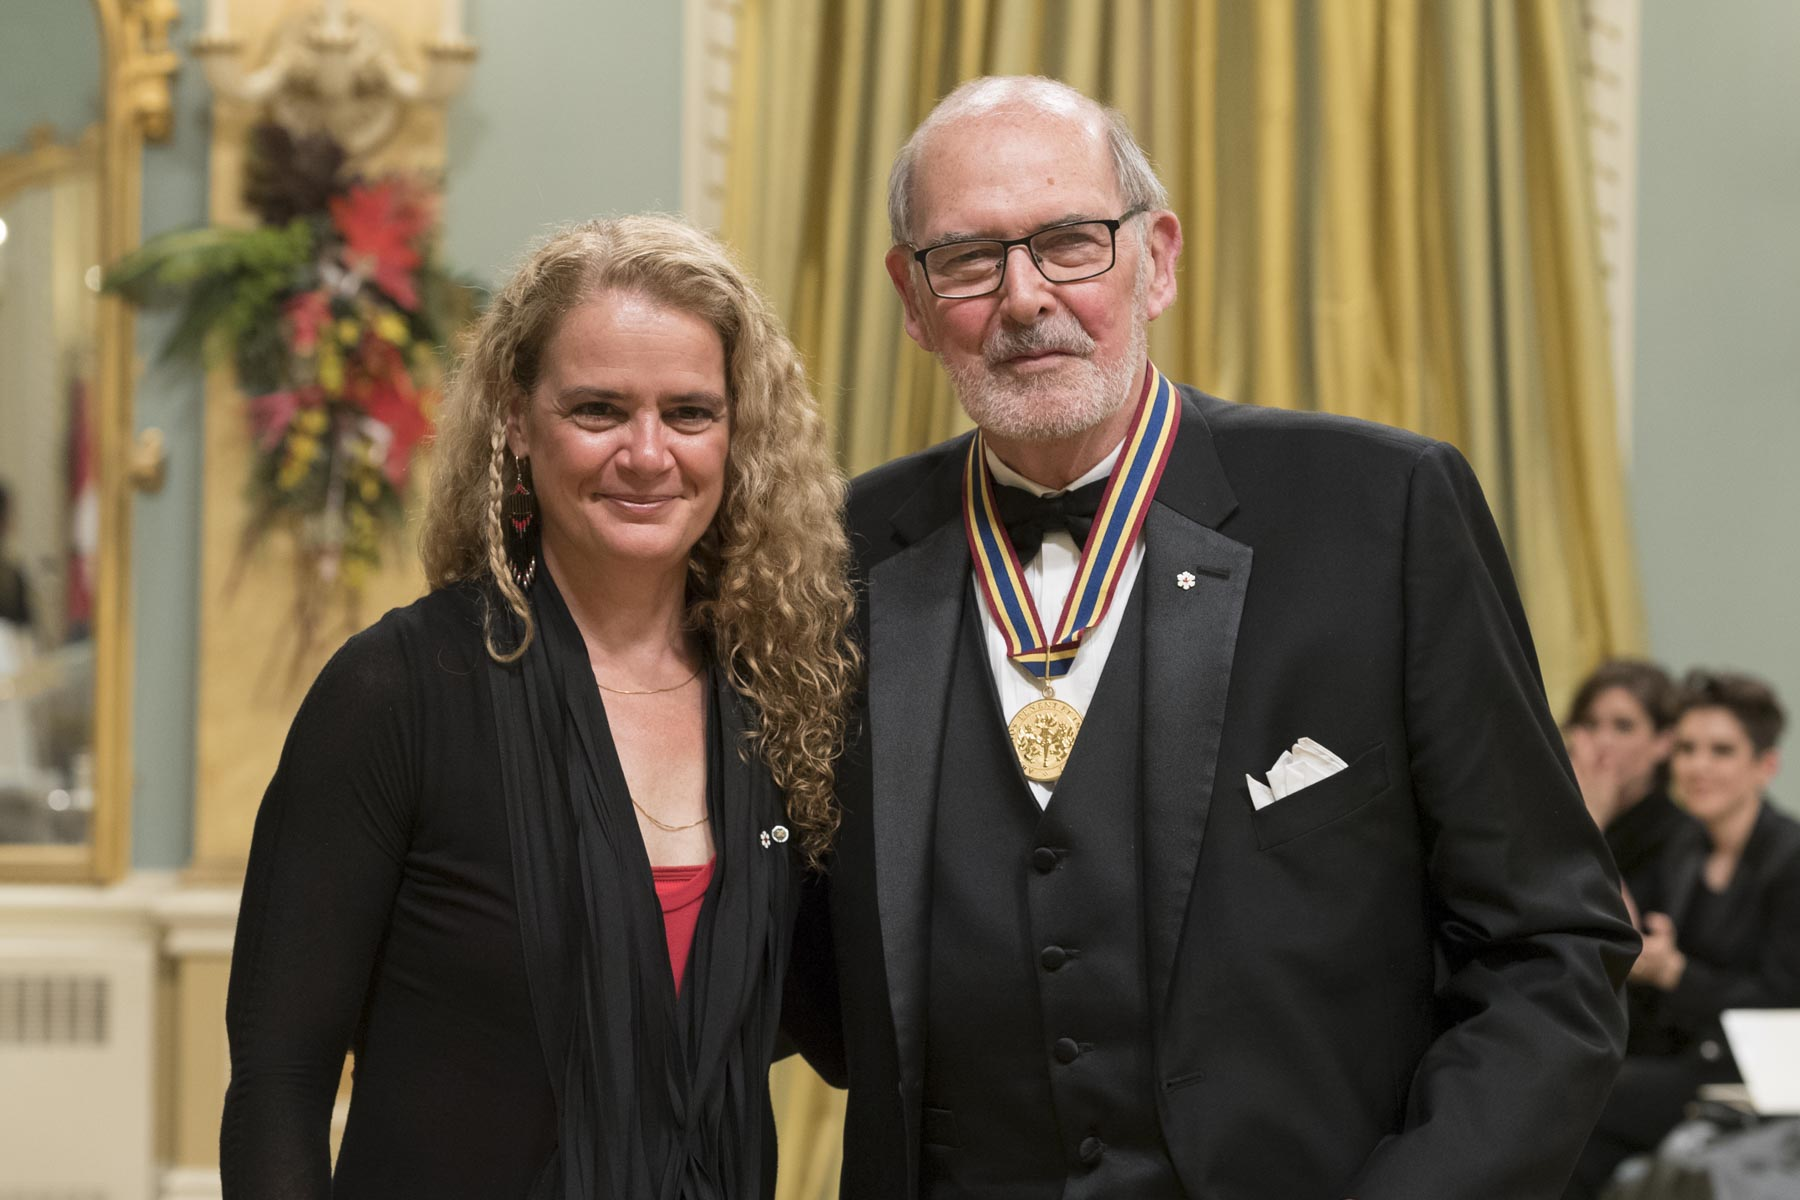 Peter A. Herrndorf was presented with a Special Lifetime Achievement Award. He has devoted his career to journalism, broadcasting and the arts in Canada. As president and CEO (1999–2018) of Canada's National Arts Centre, North America's only multidisciplinary, bilingual performing arts centre, he has worked tirelessly to fulfill the centre's mandate: to play a leadership role in fostering artistic excellence in all disciplines of the performing arts in Canada.